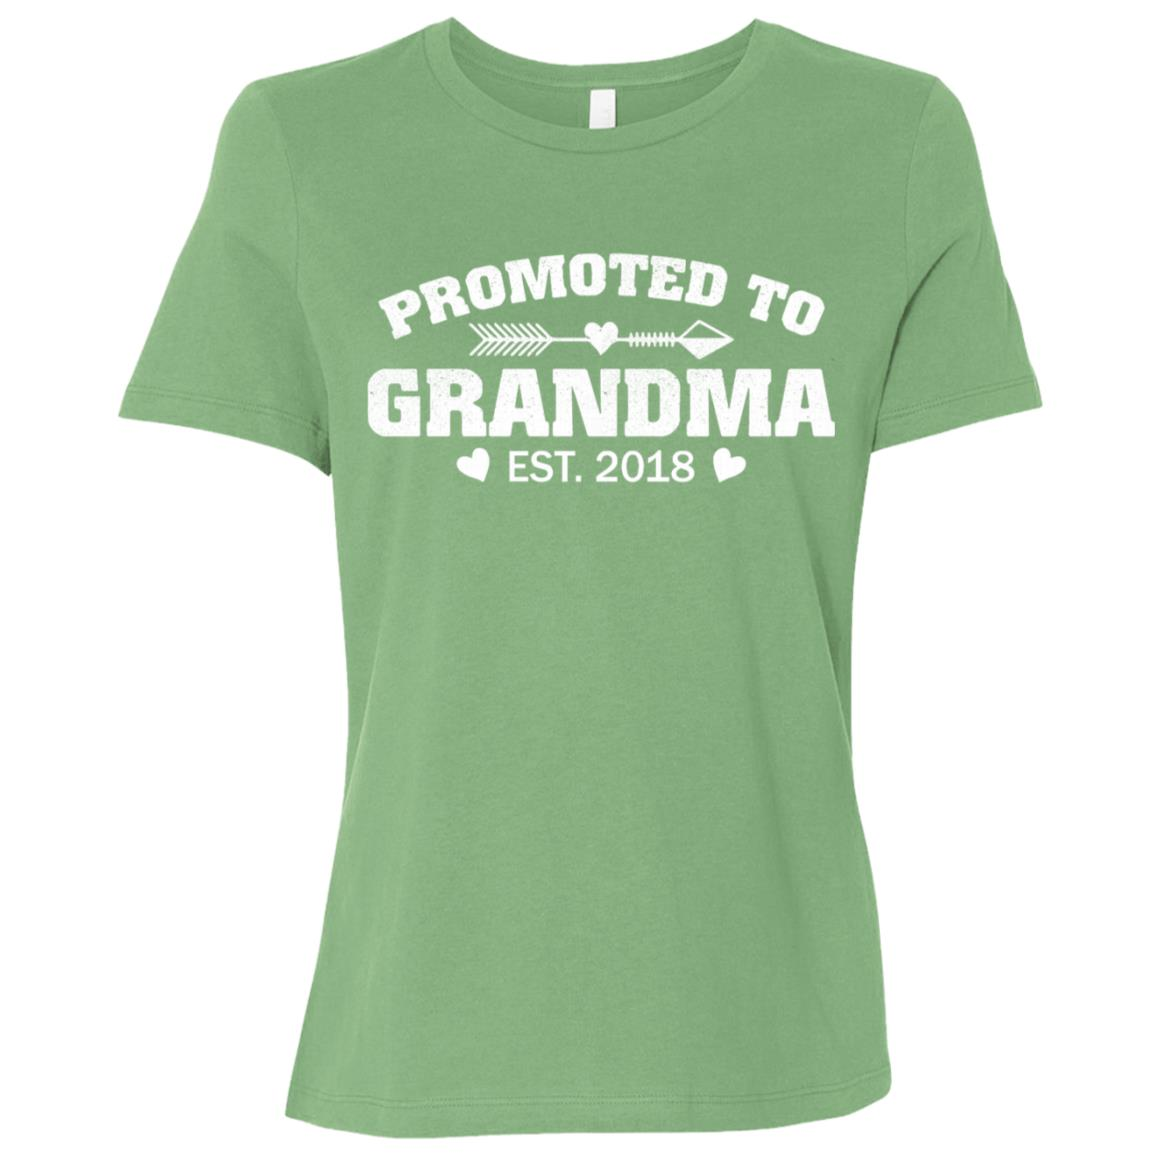 Promoted to grandma 2018 Women Short Sleeve T-Shirt